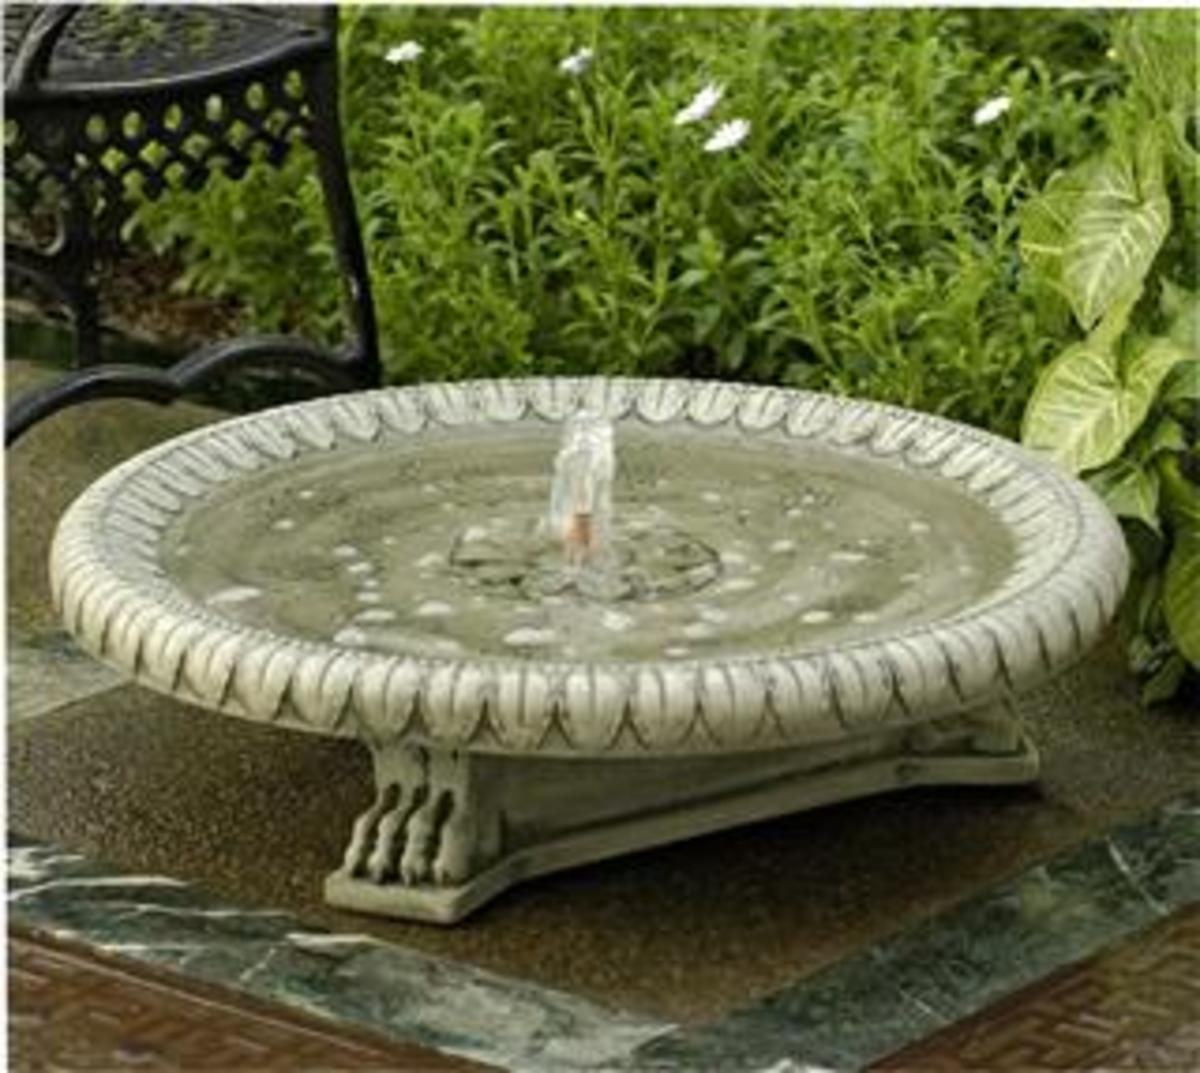 Picture of bird bath